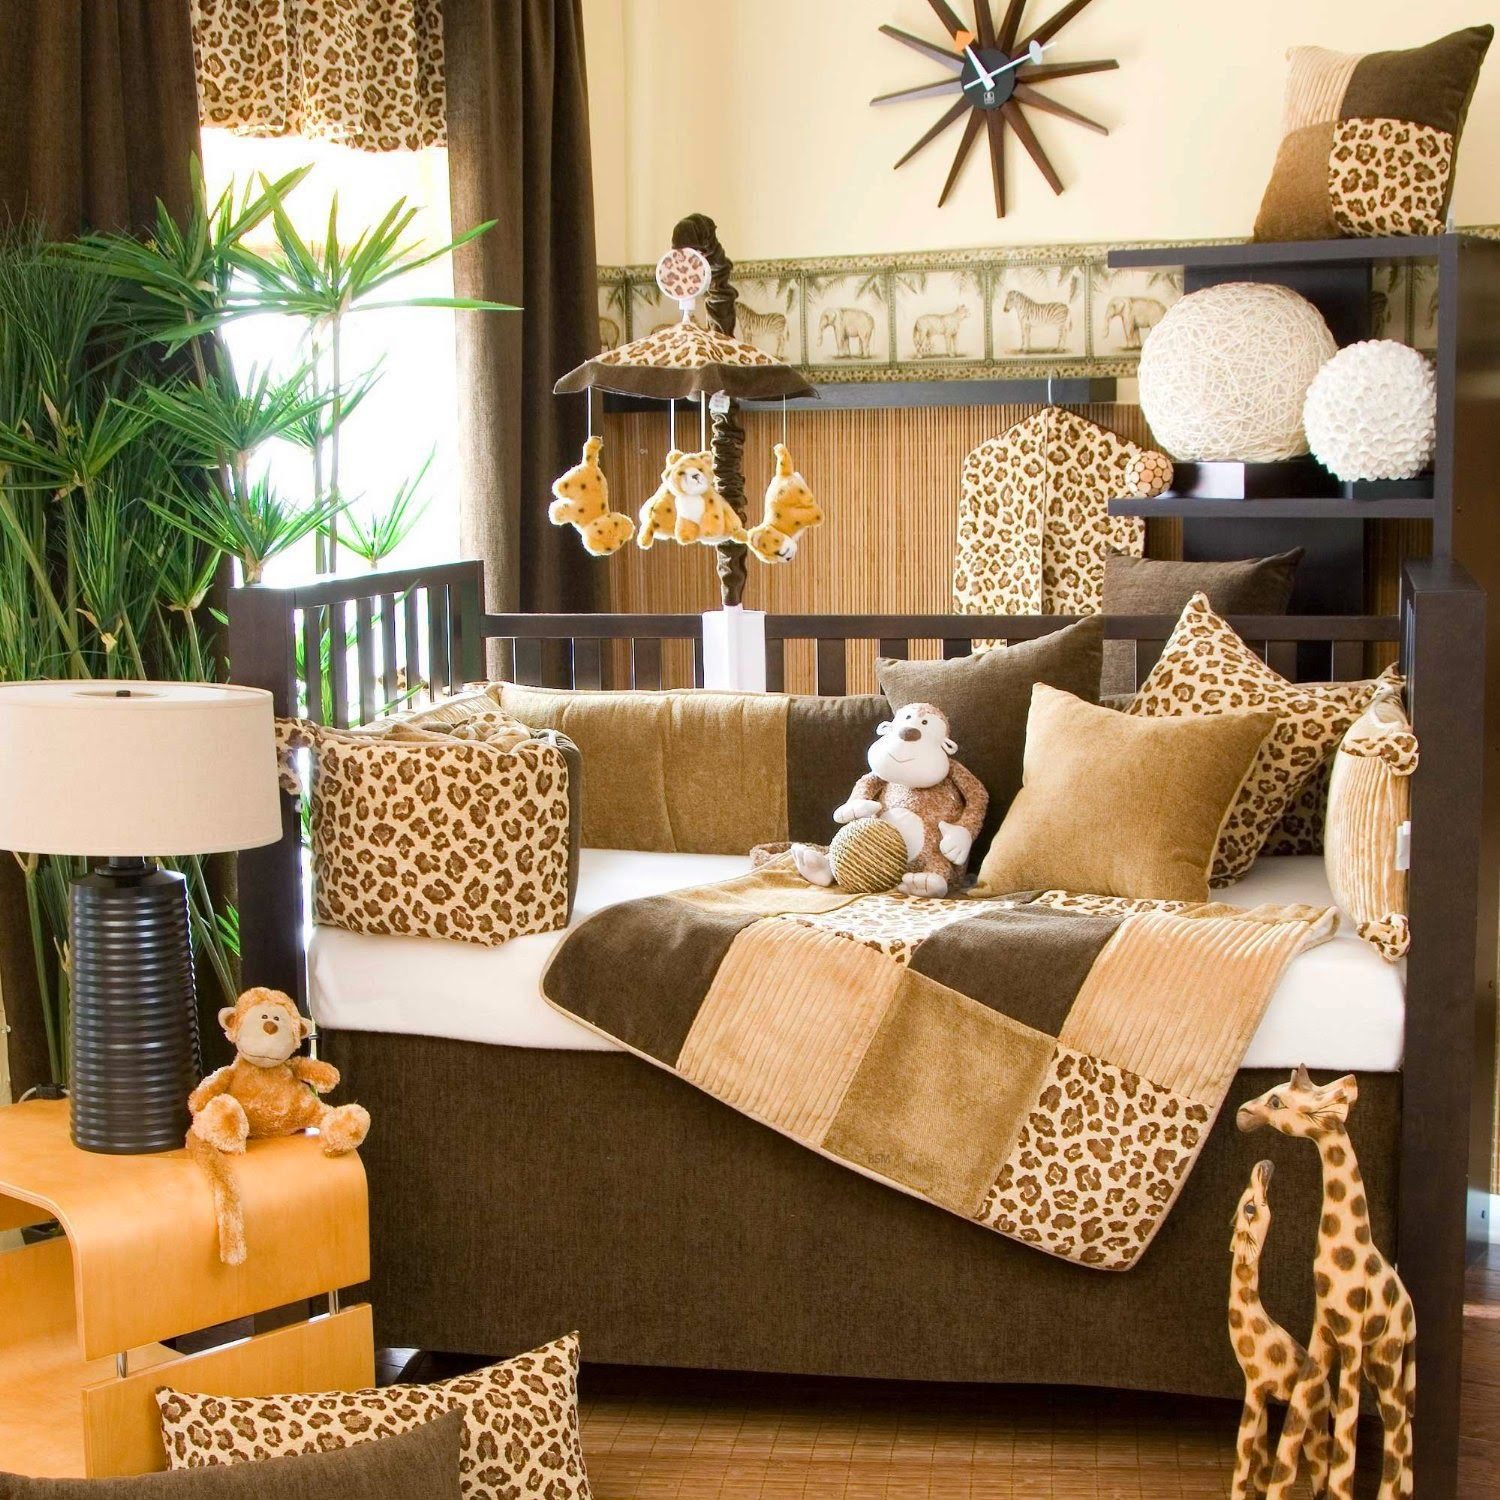 the right on mom vegan mom blog animal leopard and cheetah print